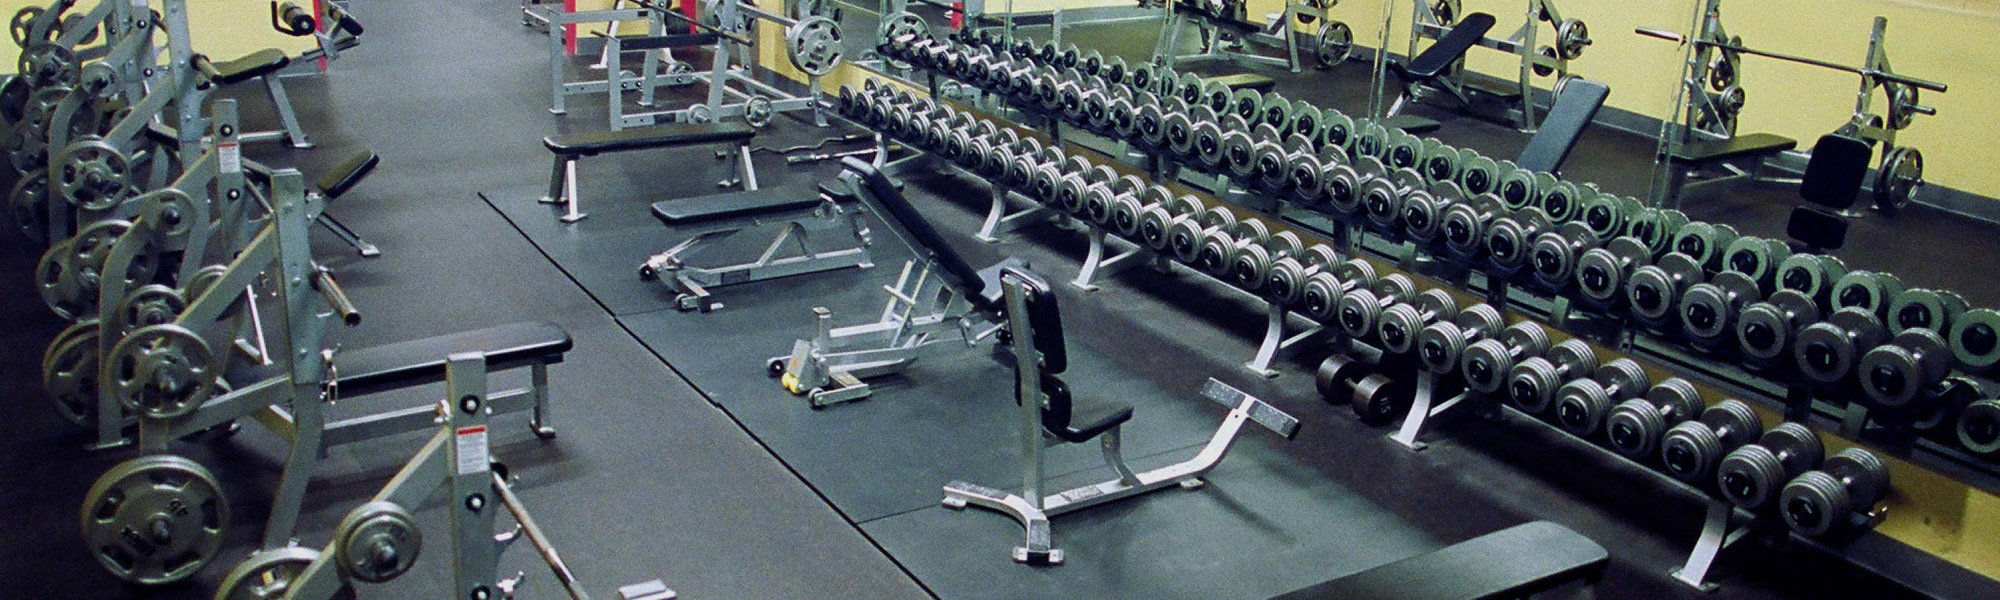 Myrtle Beach Fitness Center